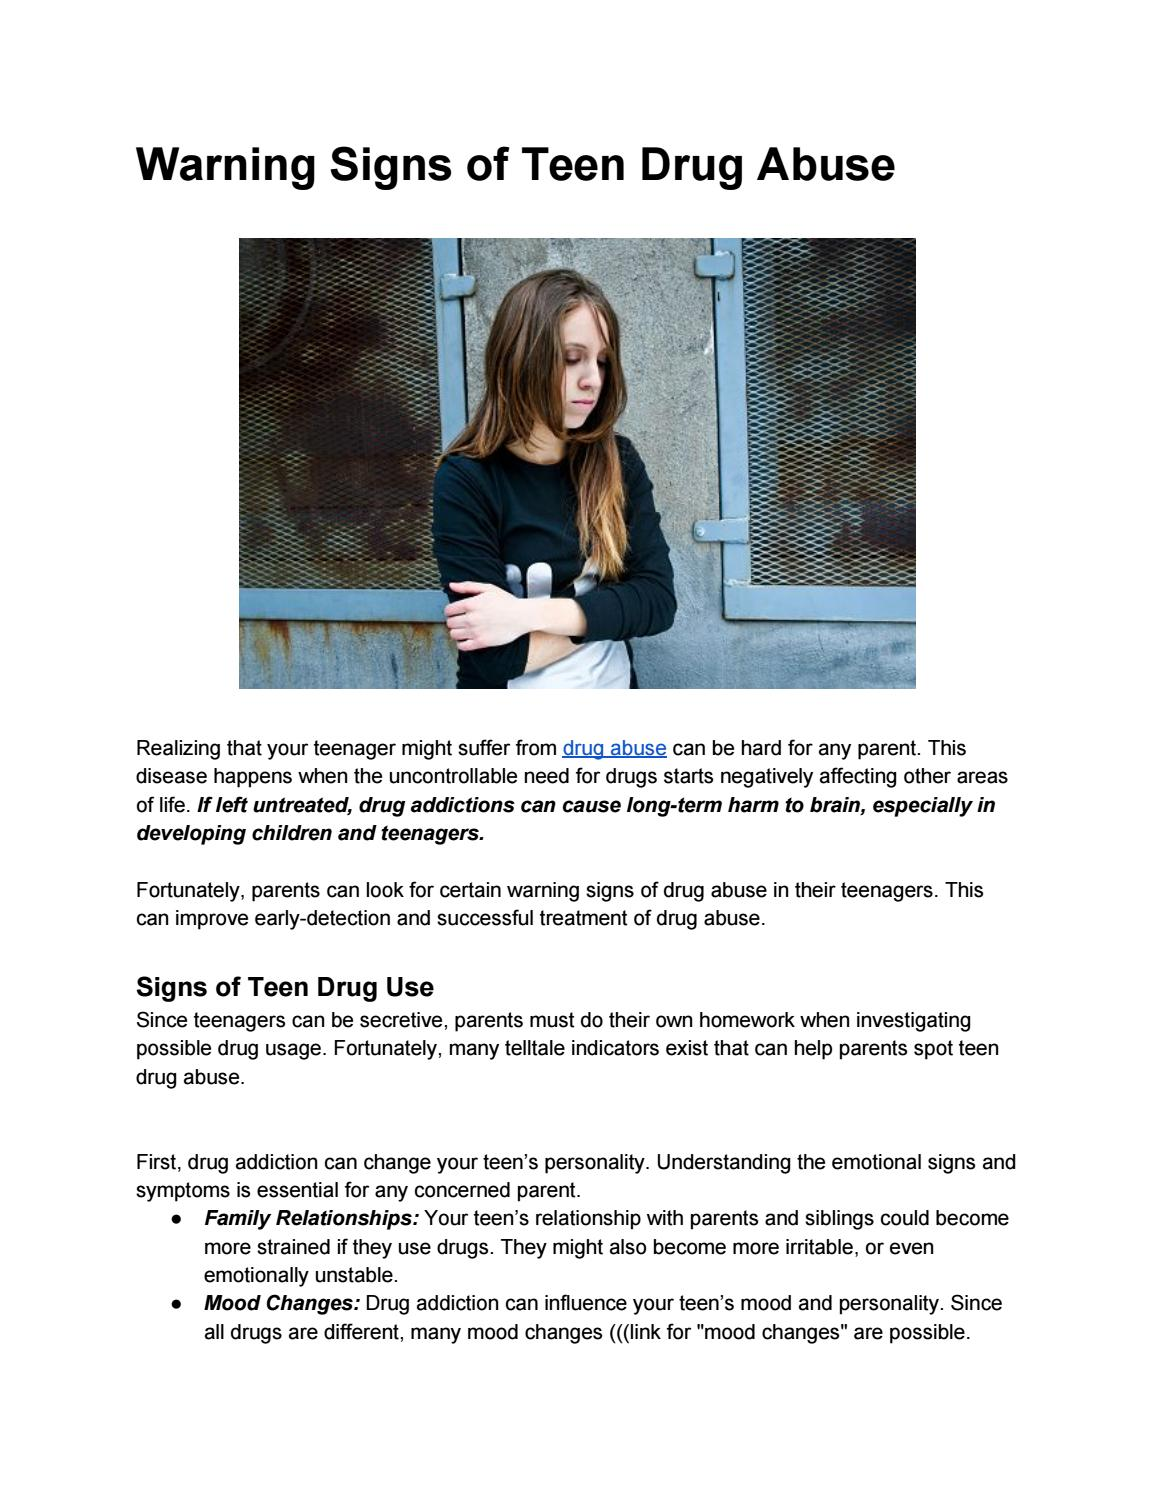 Warning signs of teen drug abuse by prowriter4life - issuu